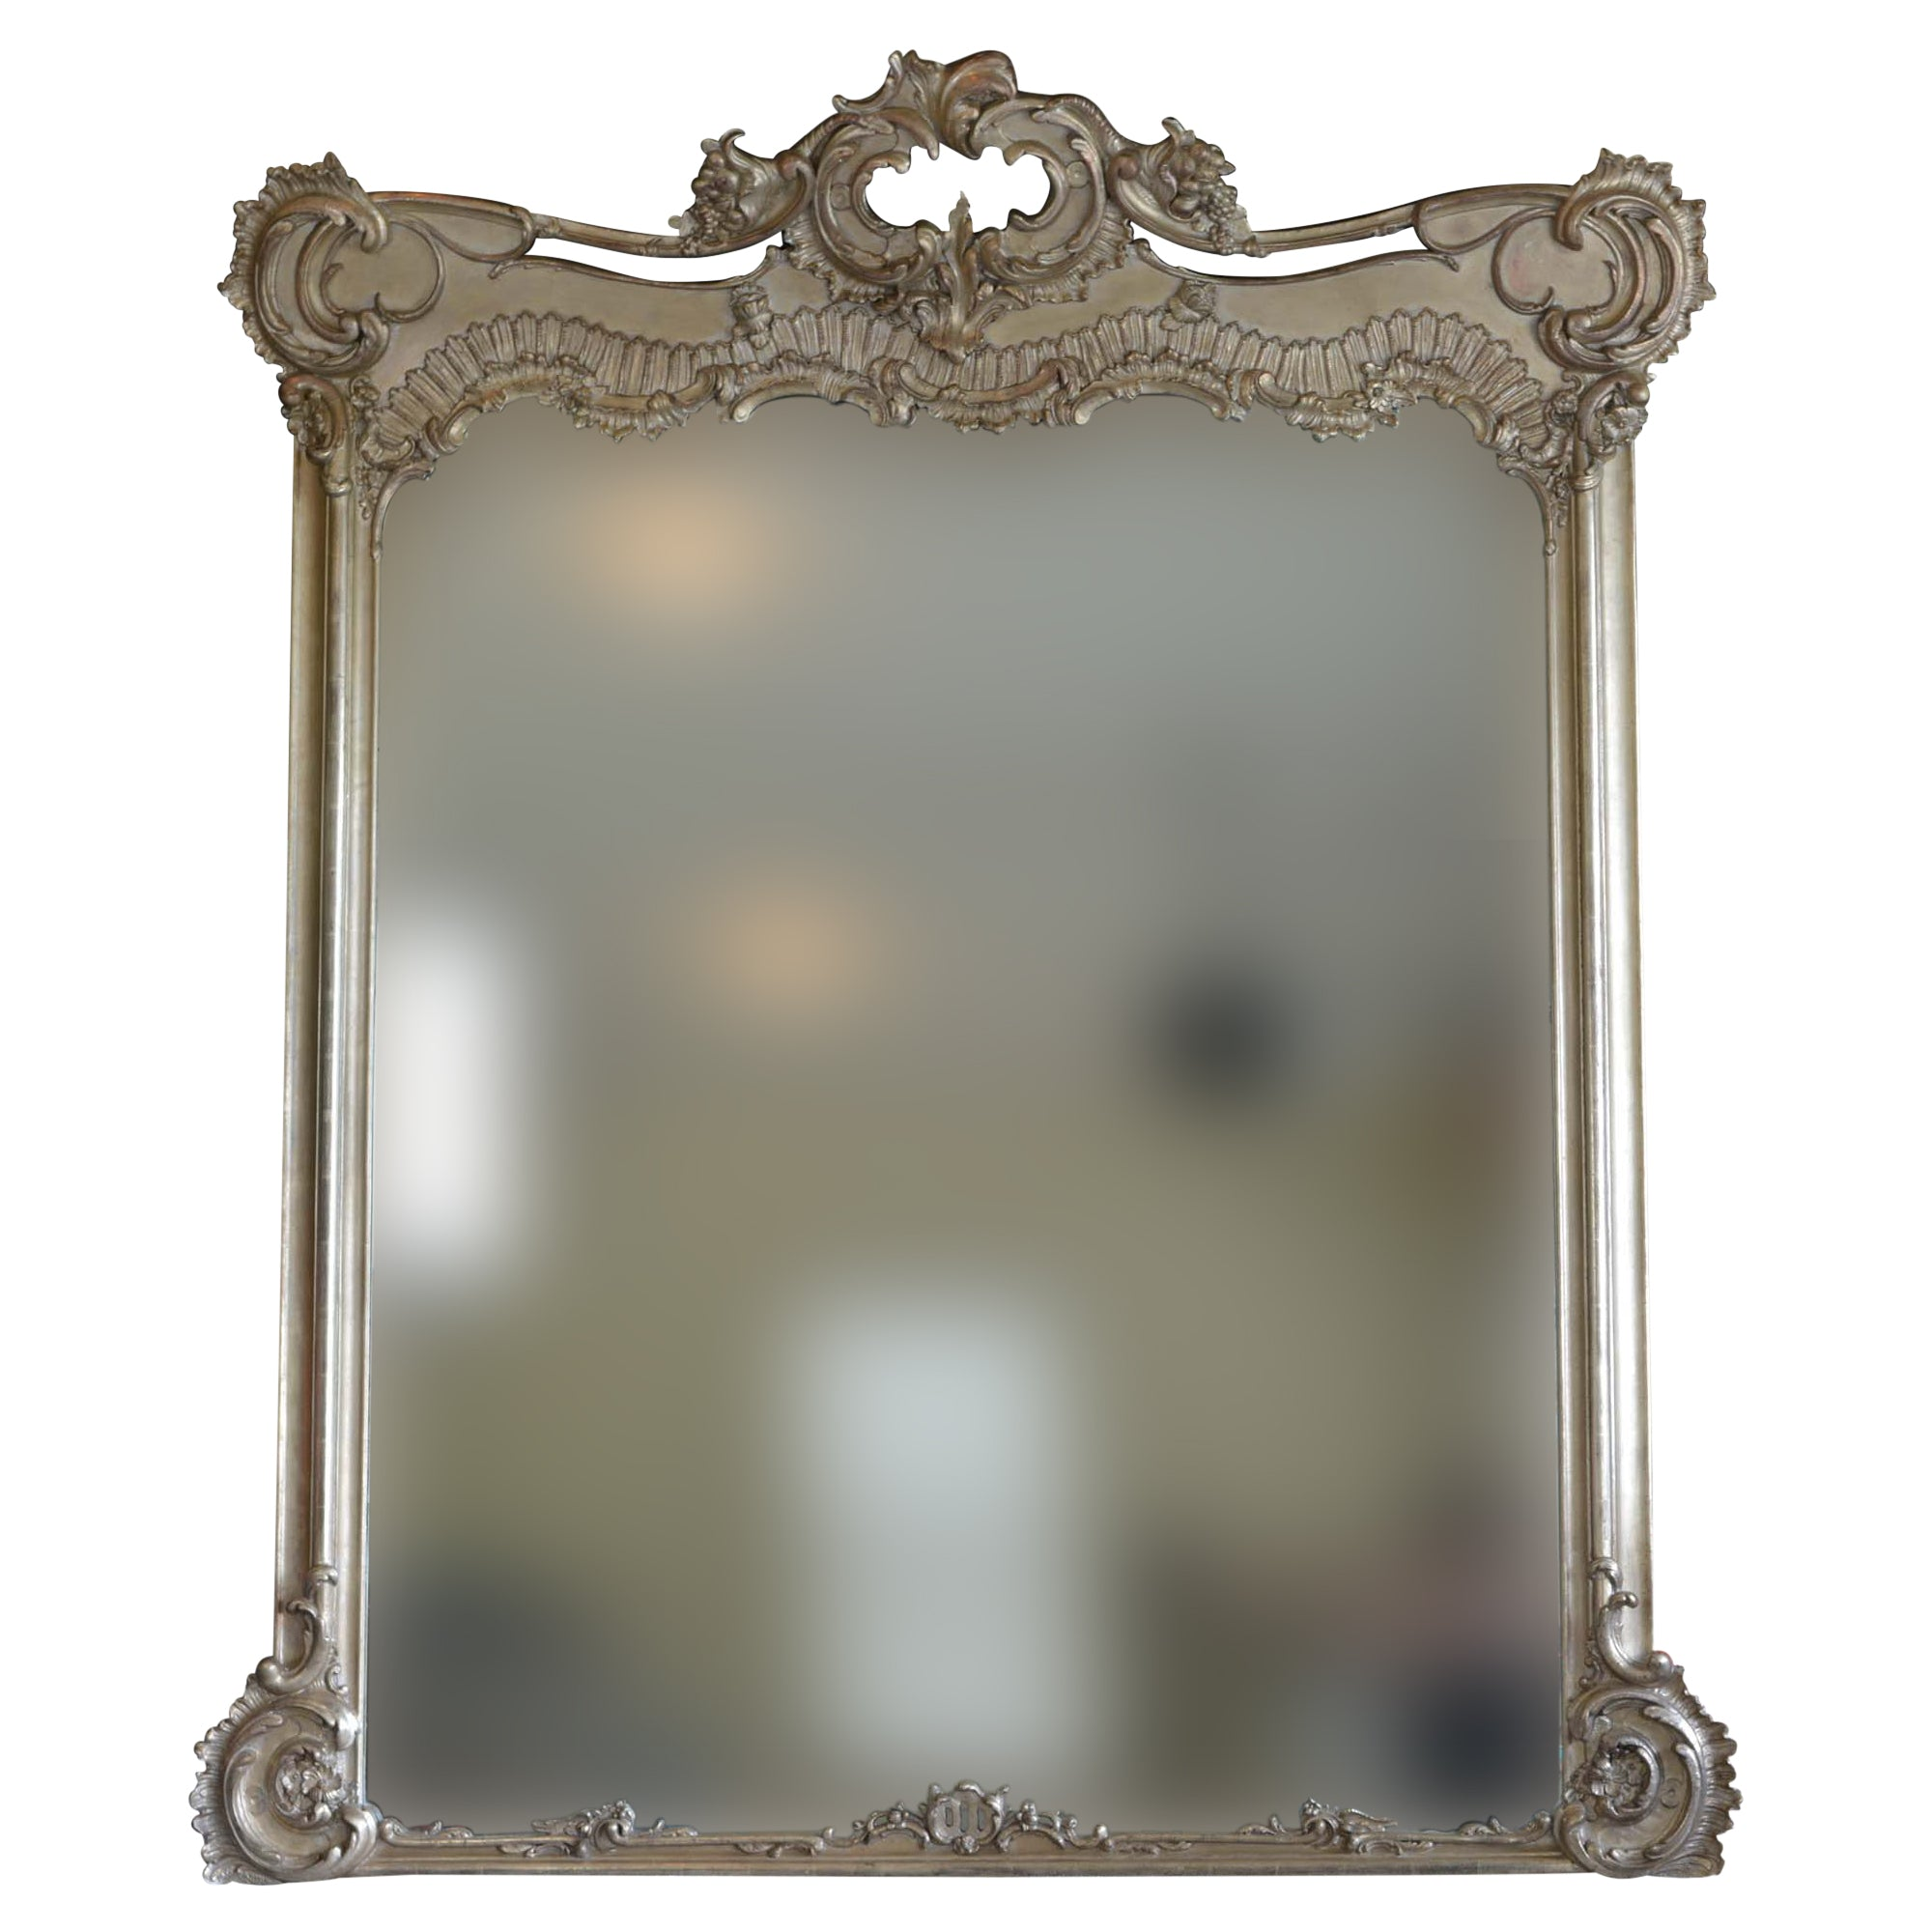 Large Silver Tone French Rococo Style Wall or Floor Mirror